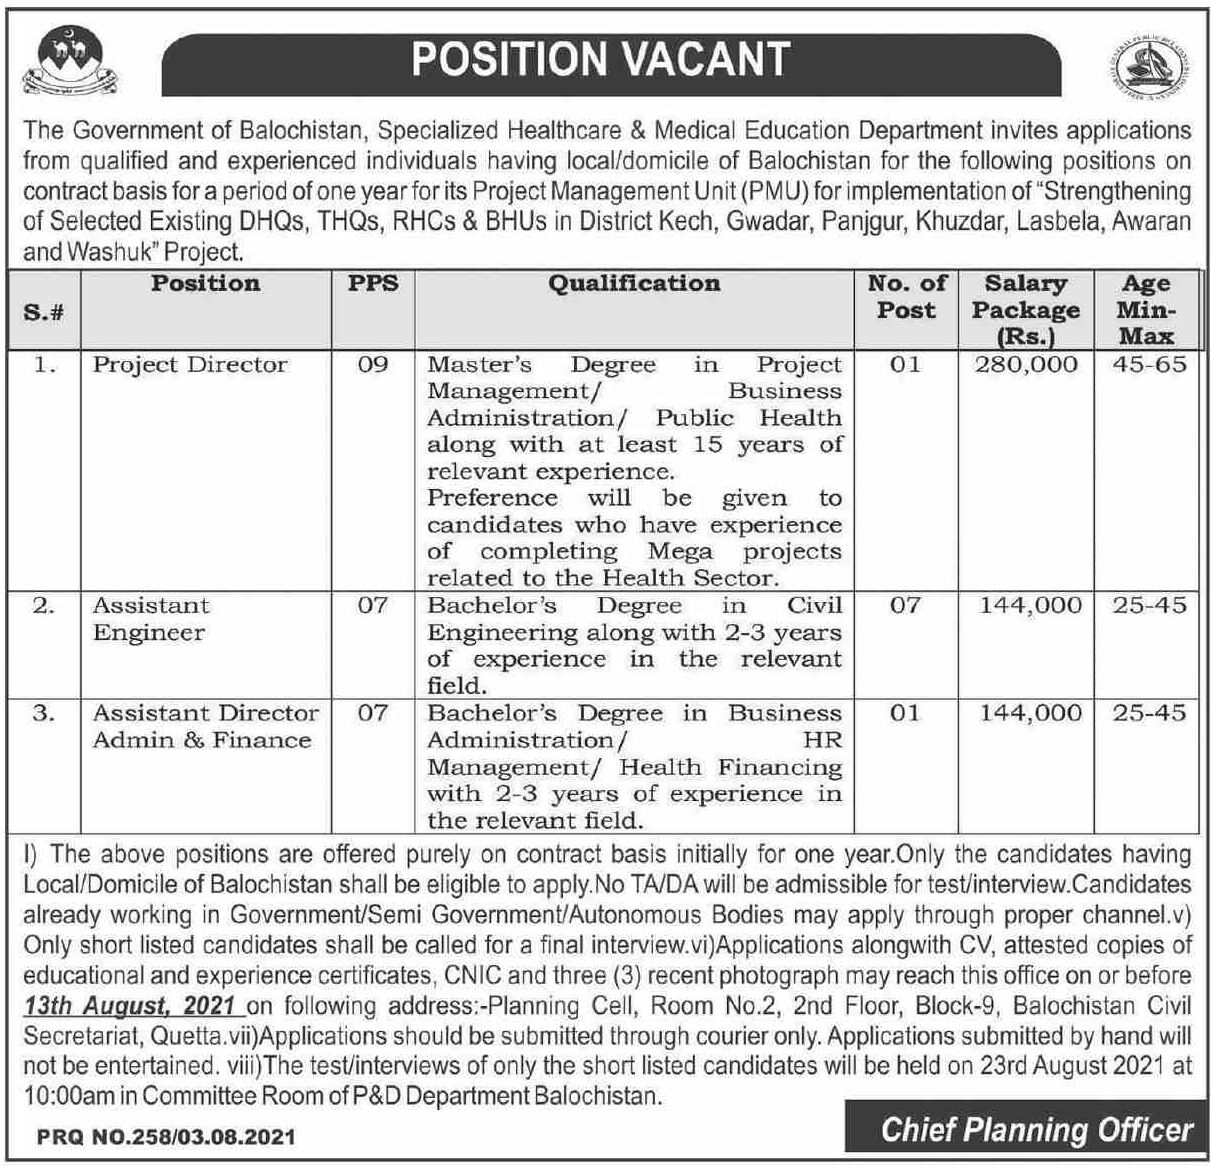 The Government of Balochistan Specialized Healthcare & Medical Education Department Vacancies 2021 1